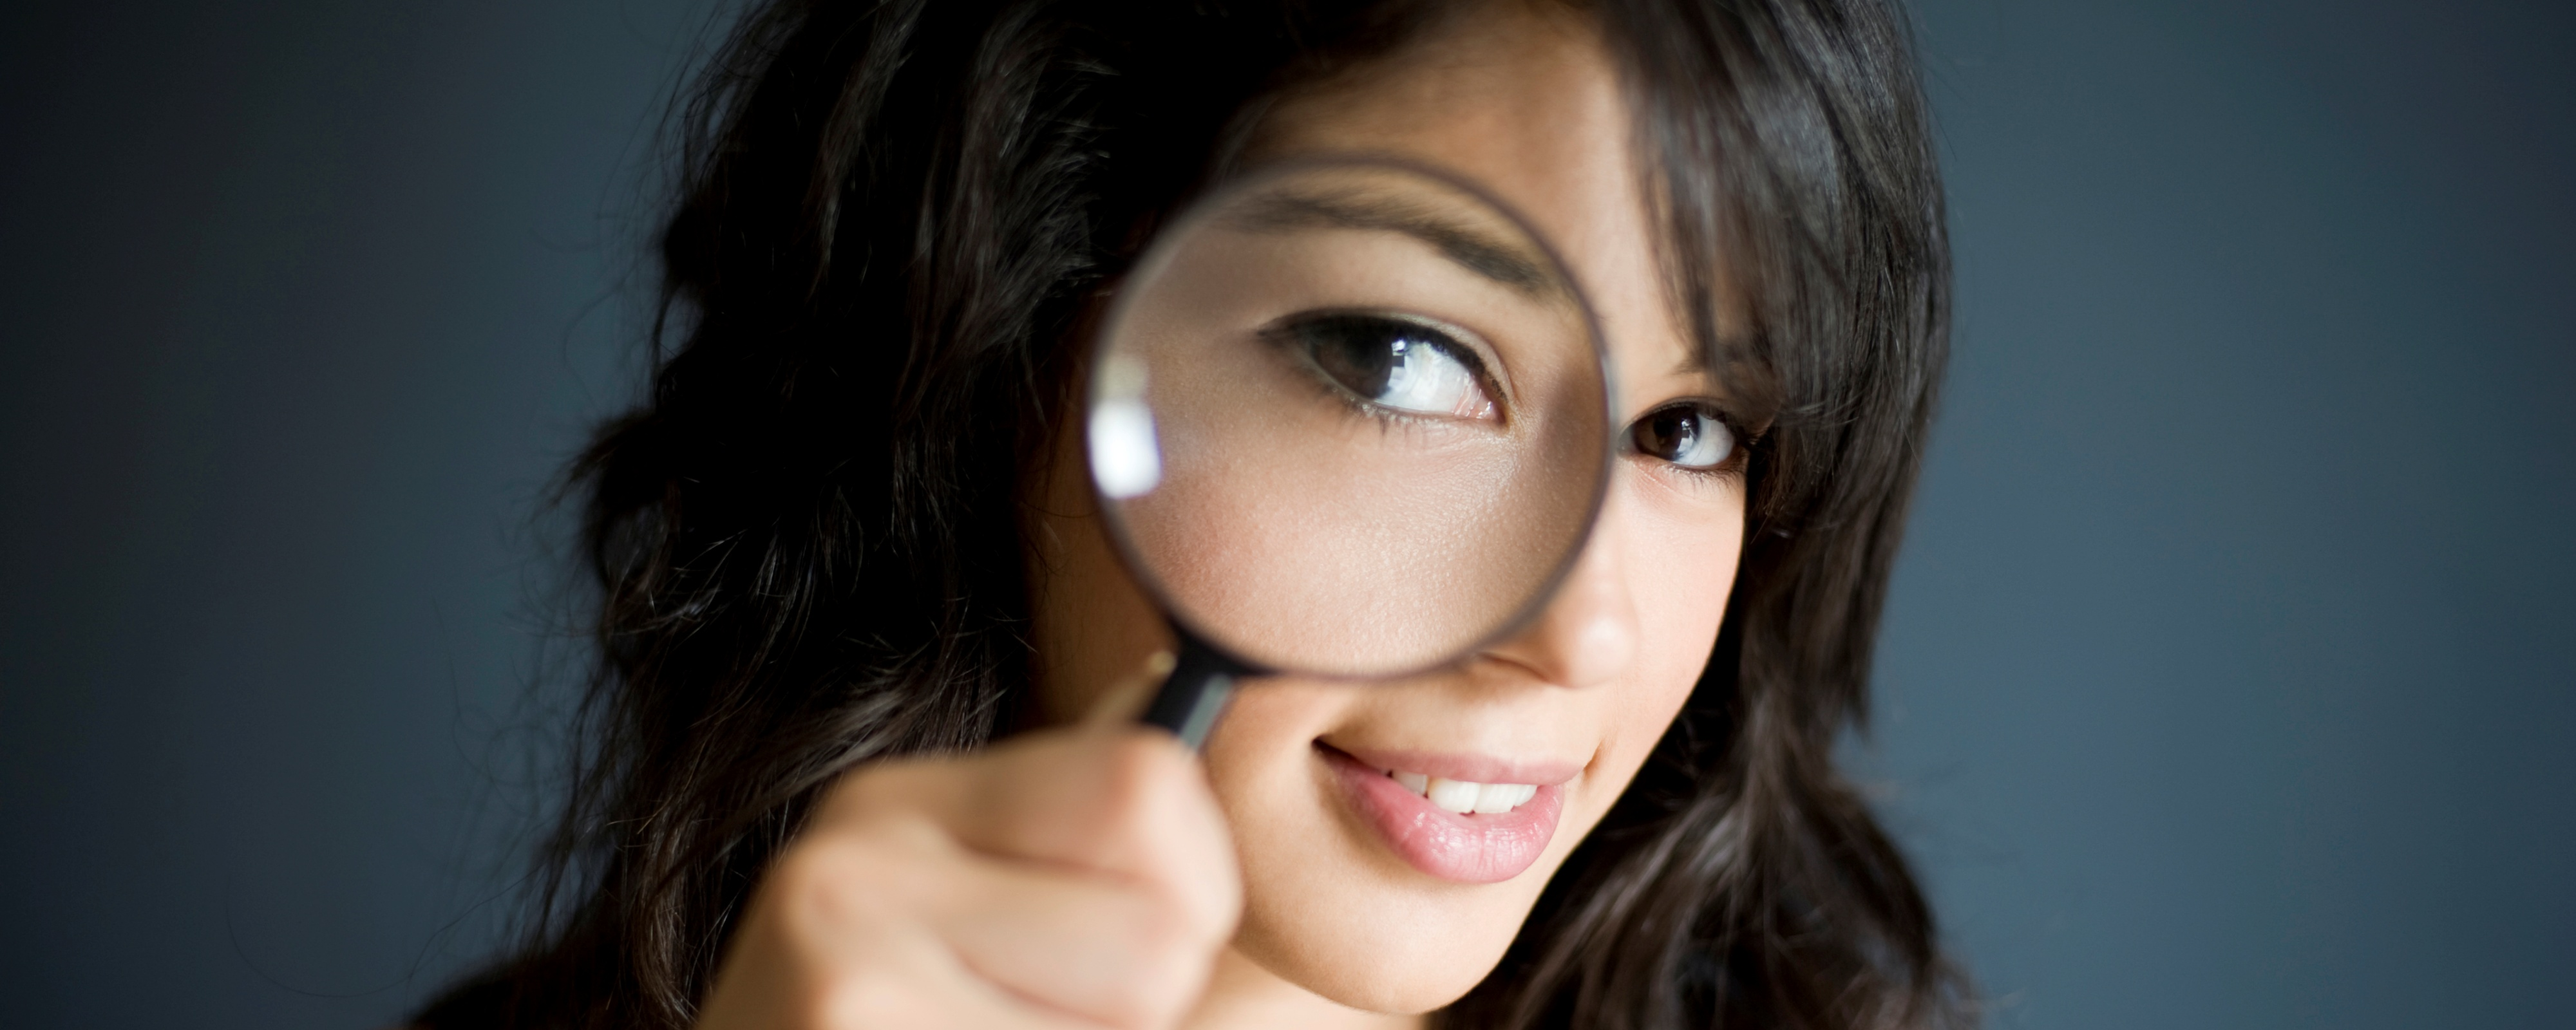 4000x1600 woman+with+magnifier_istock_000007178243xlarge